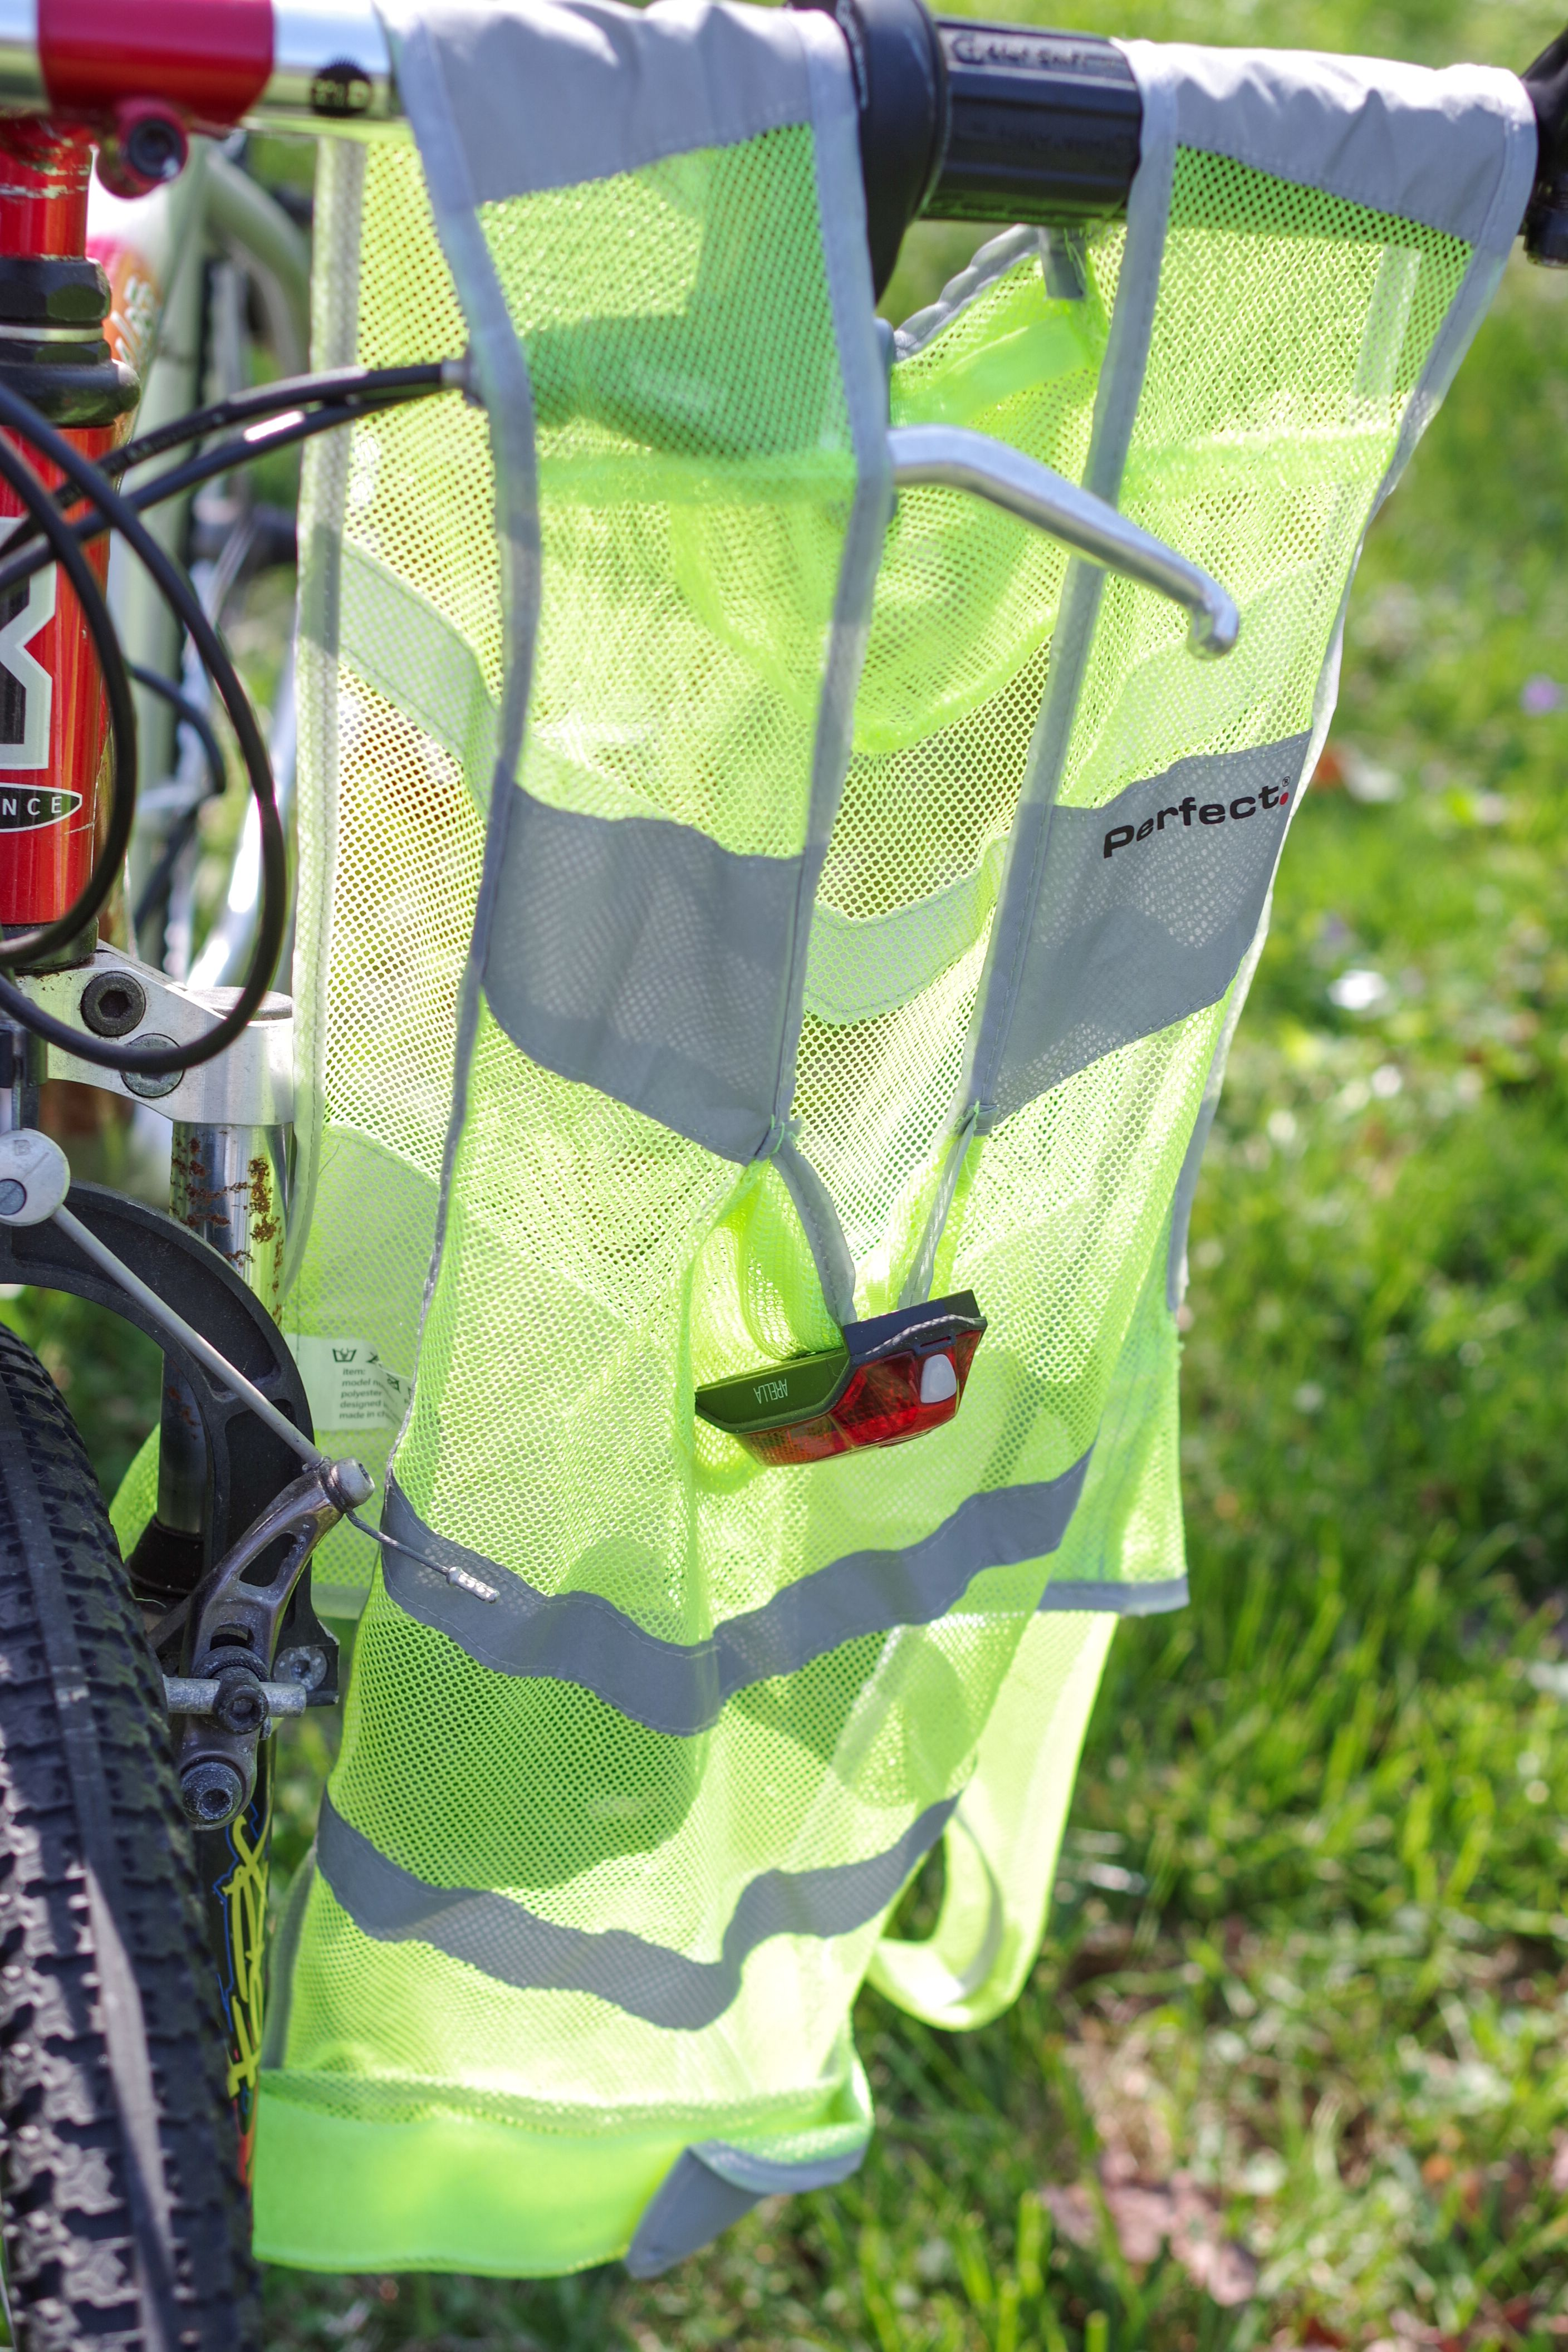 Enjoy Bike Month Safely Bicycling Safety Considerations Bicycle